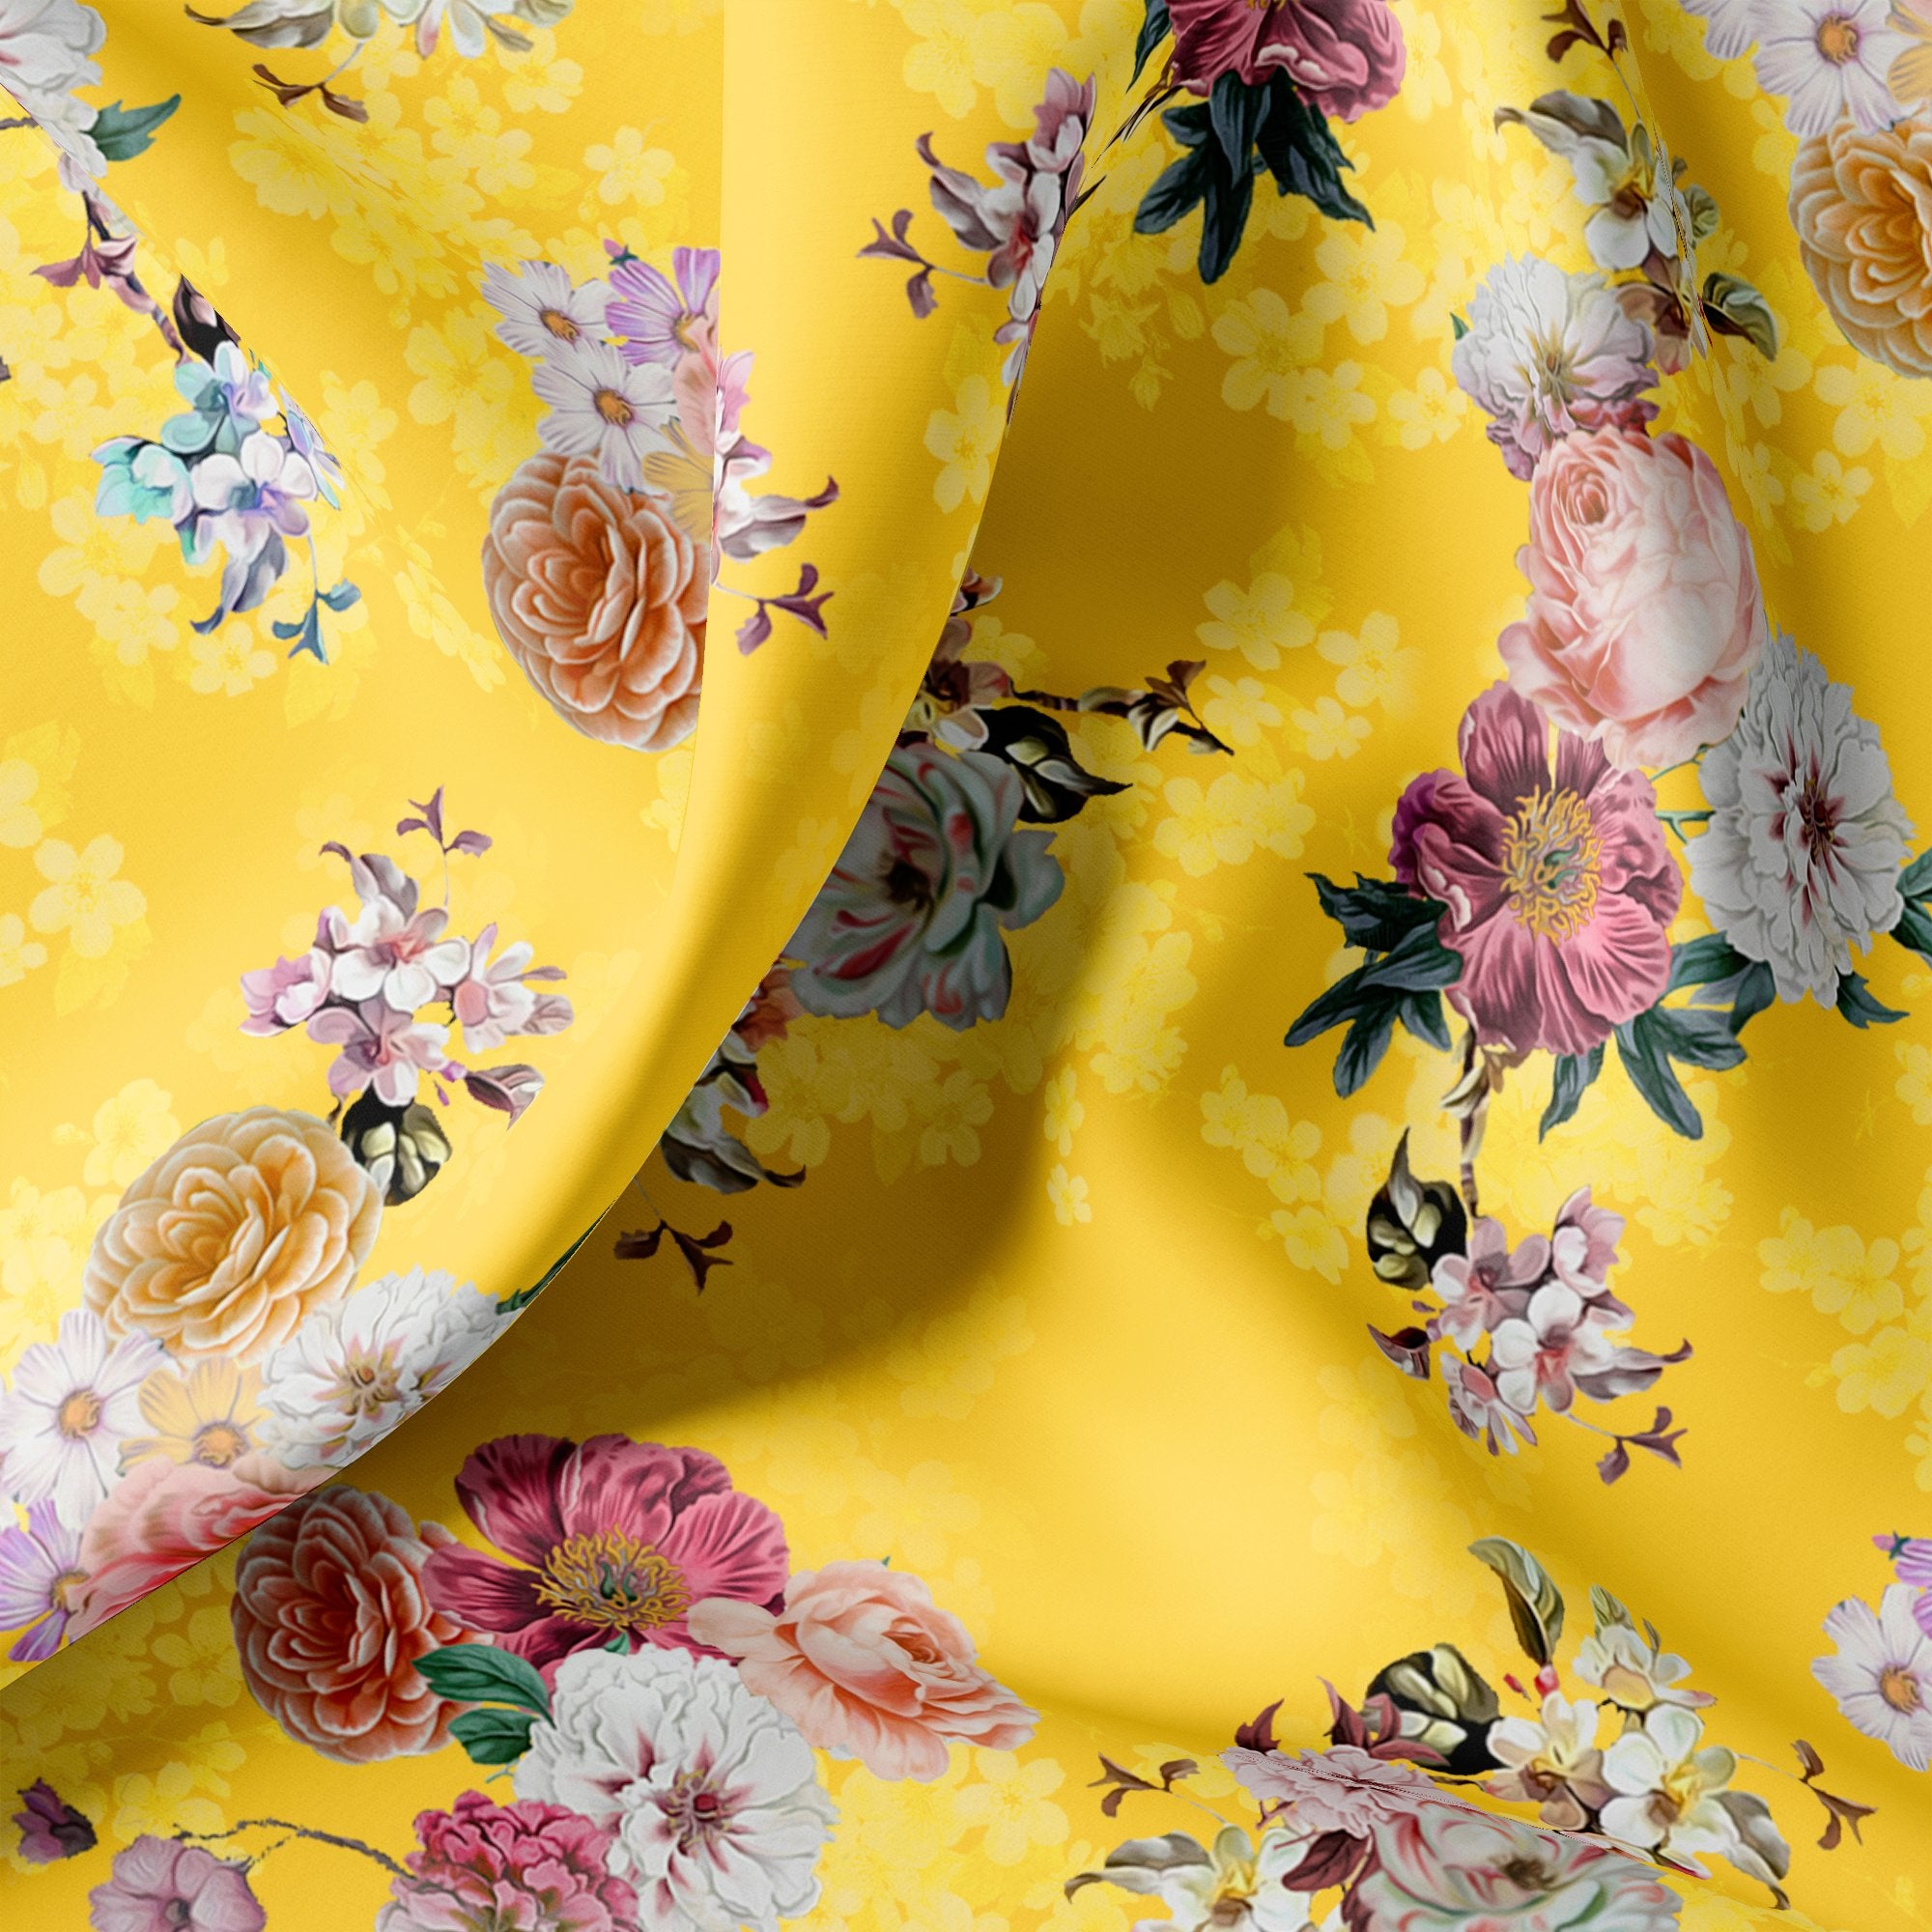 Beautiful Yellow Base Floral Bunch Digital Printed Fabric - FAB VOGUE Studio. Shop Fabric @ www.fabvoguestudio.com